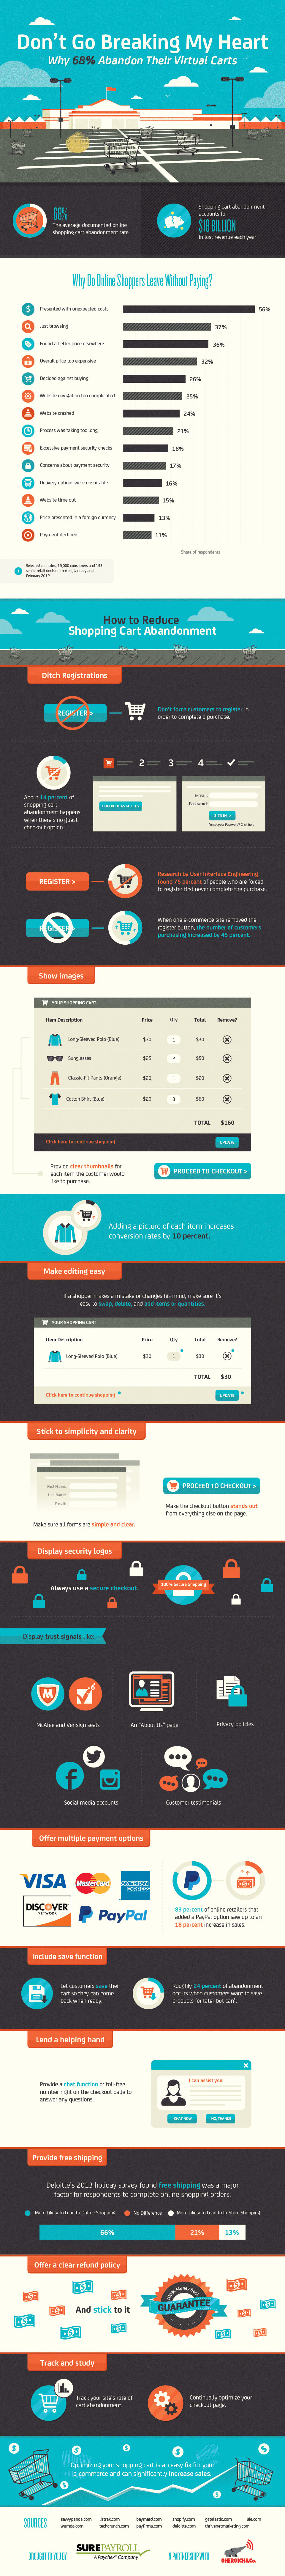 eCommerce Cart Abandonment Infographic